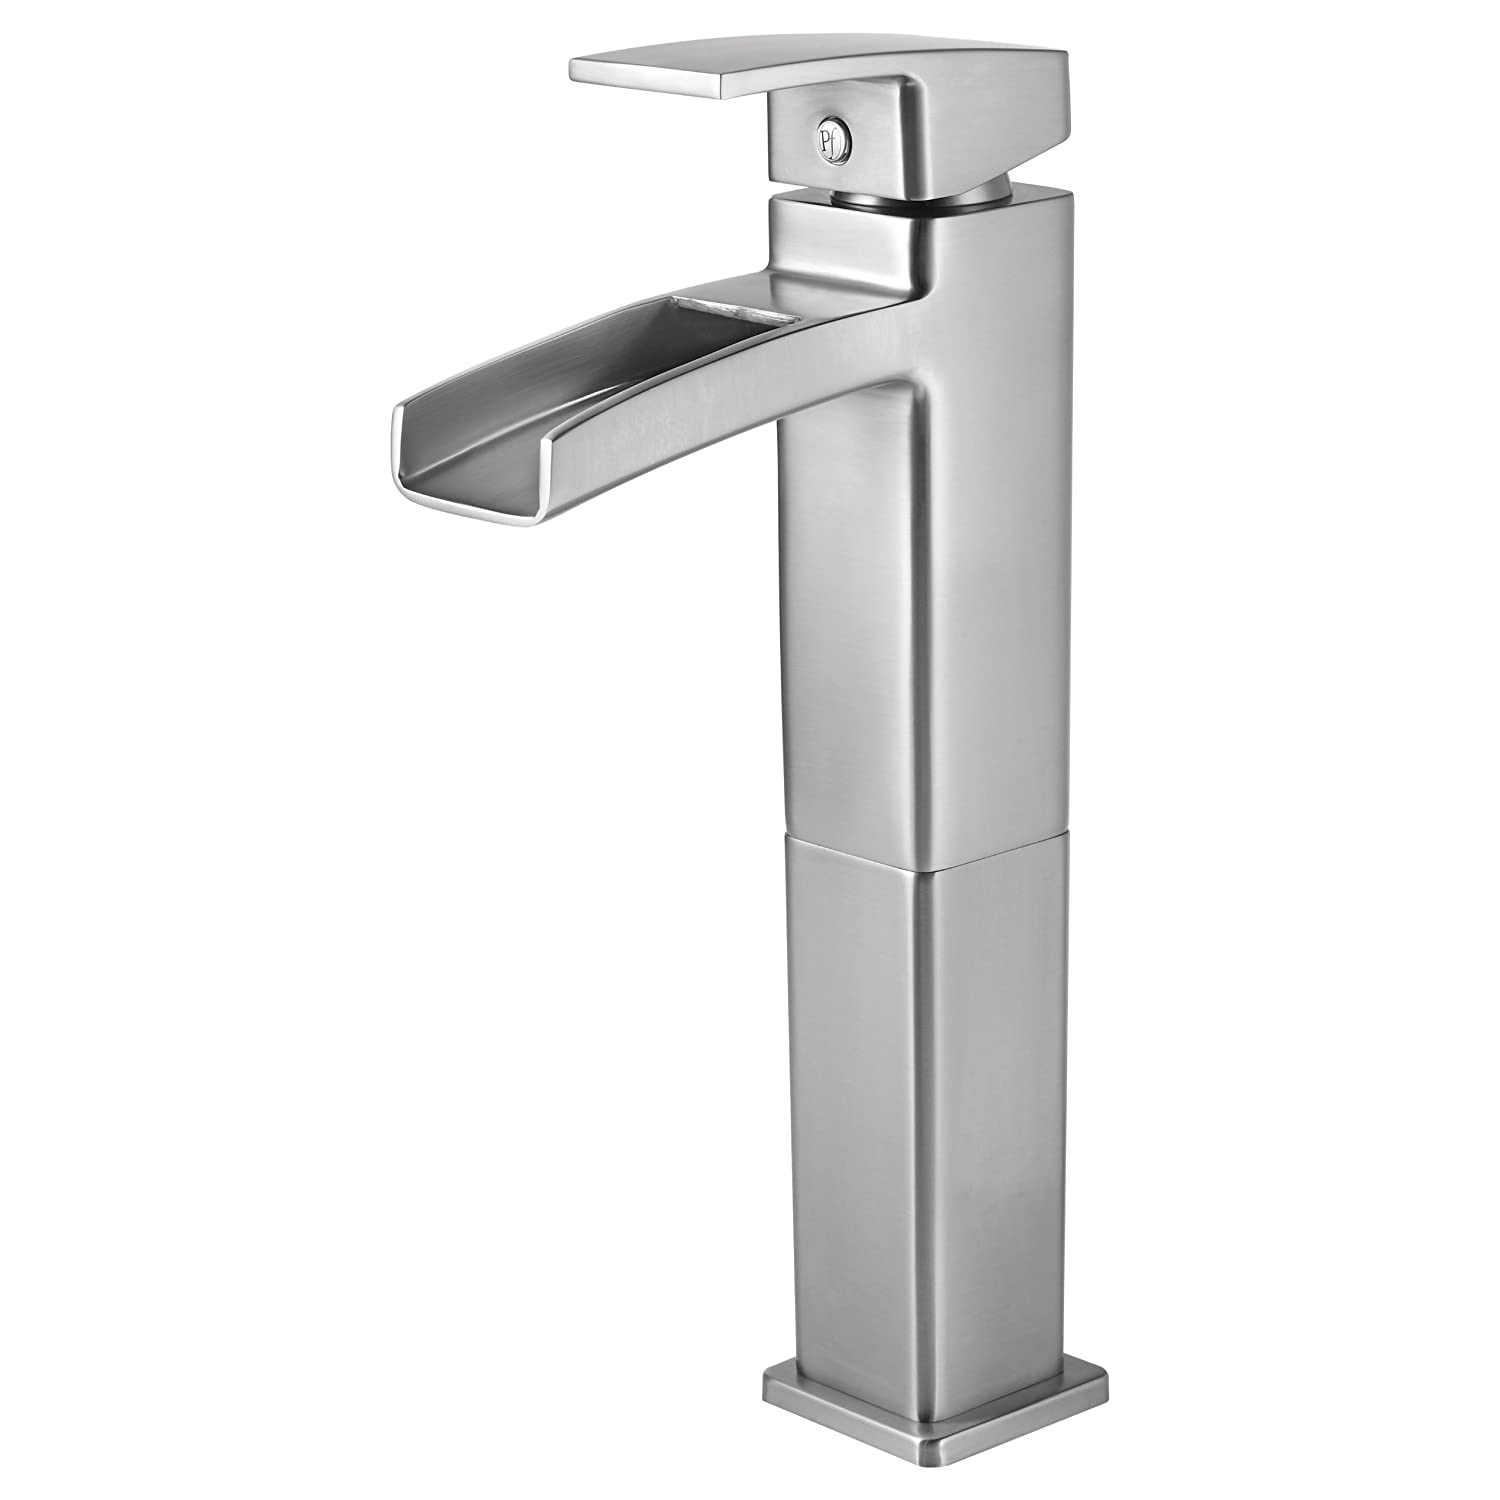 kokols faucet home product vessel chrome cascade shipping sink waterfall garden faucets overstock today free in